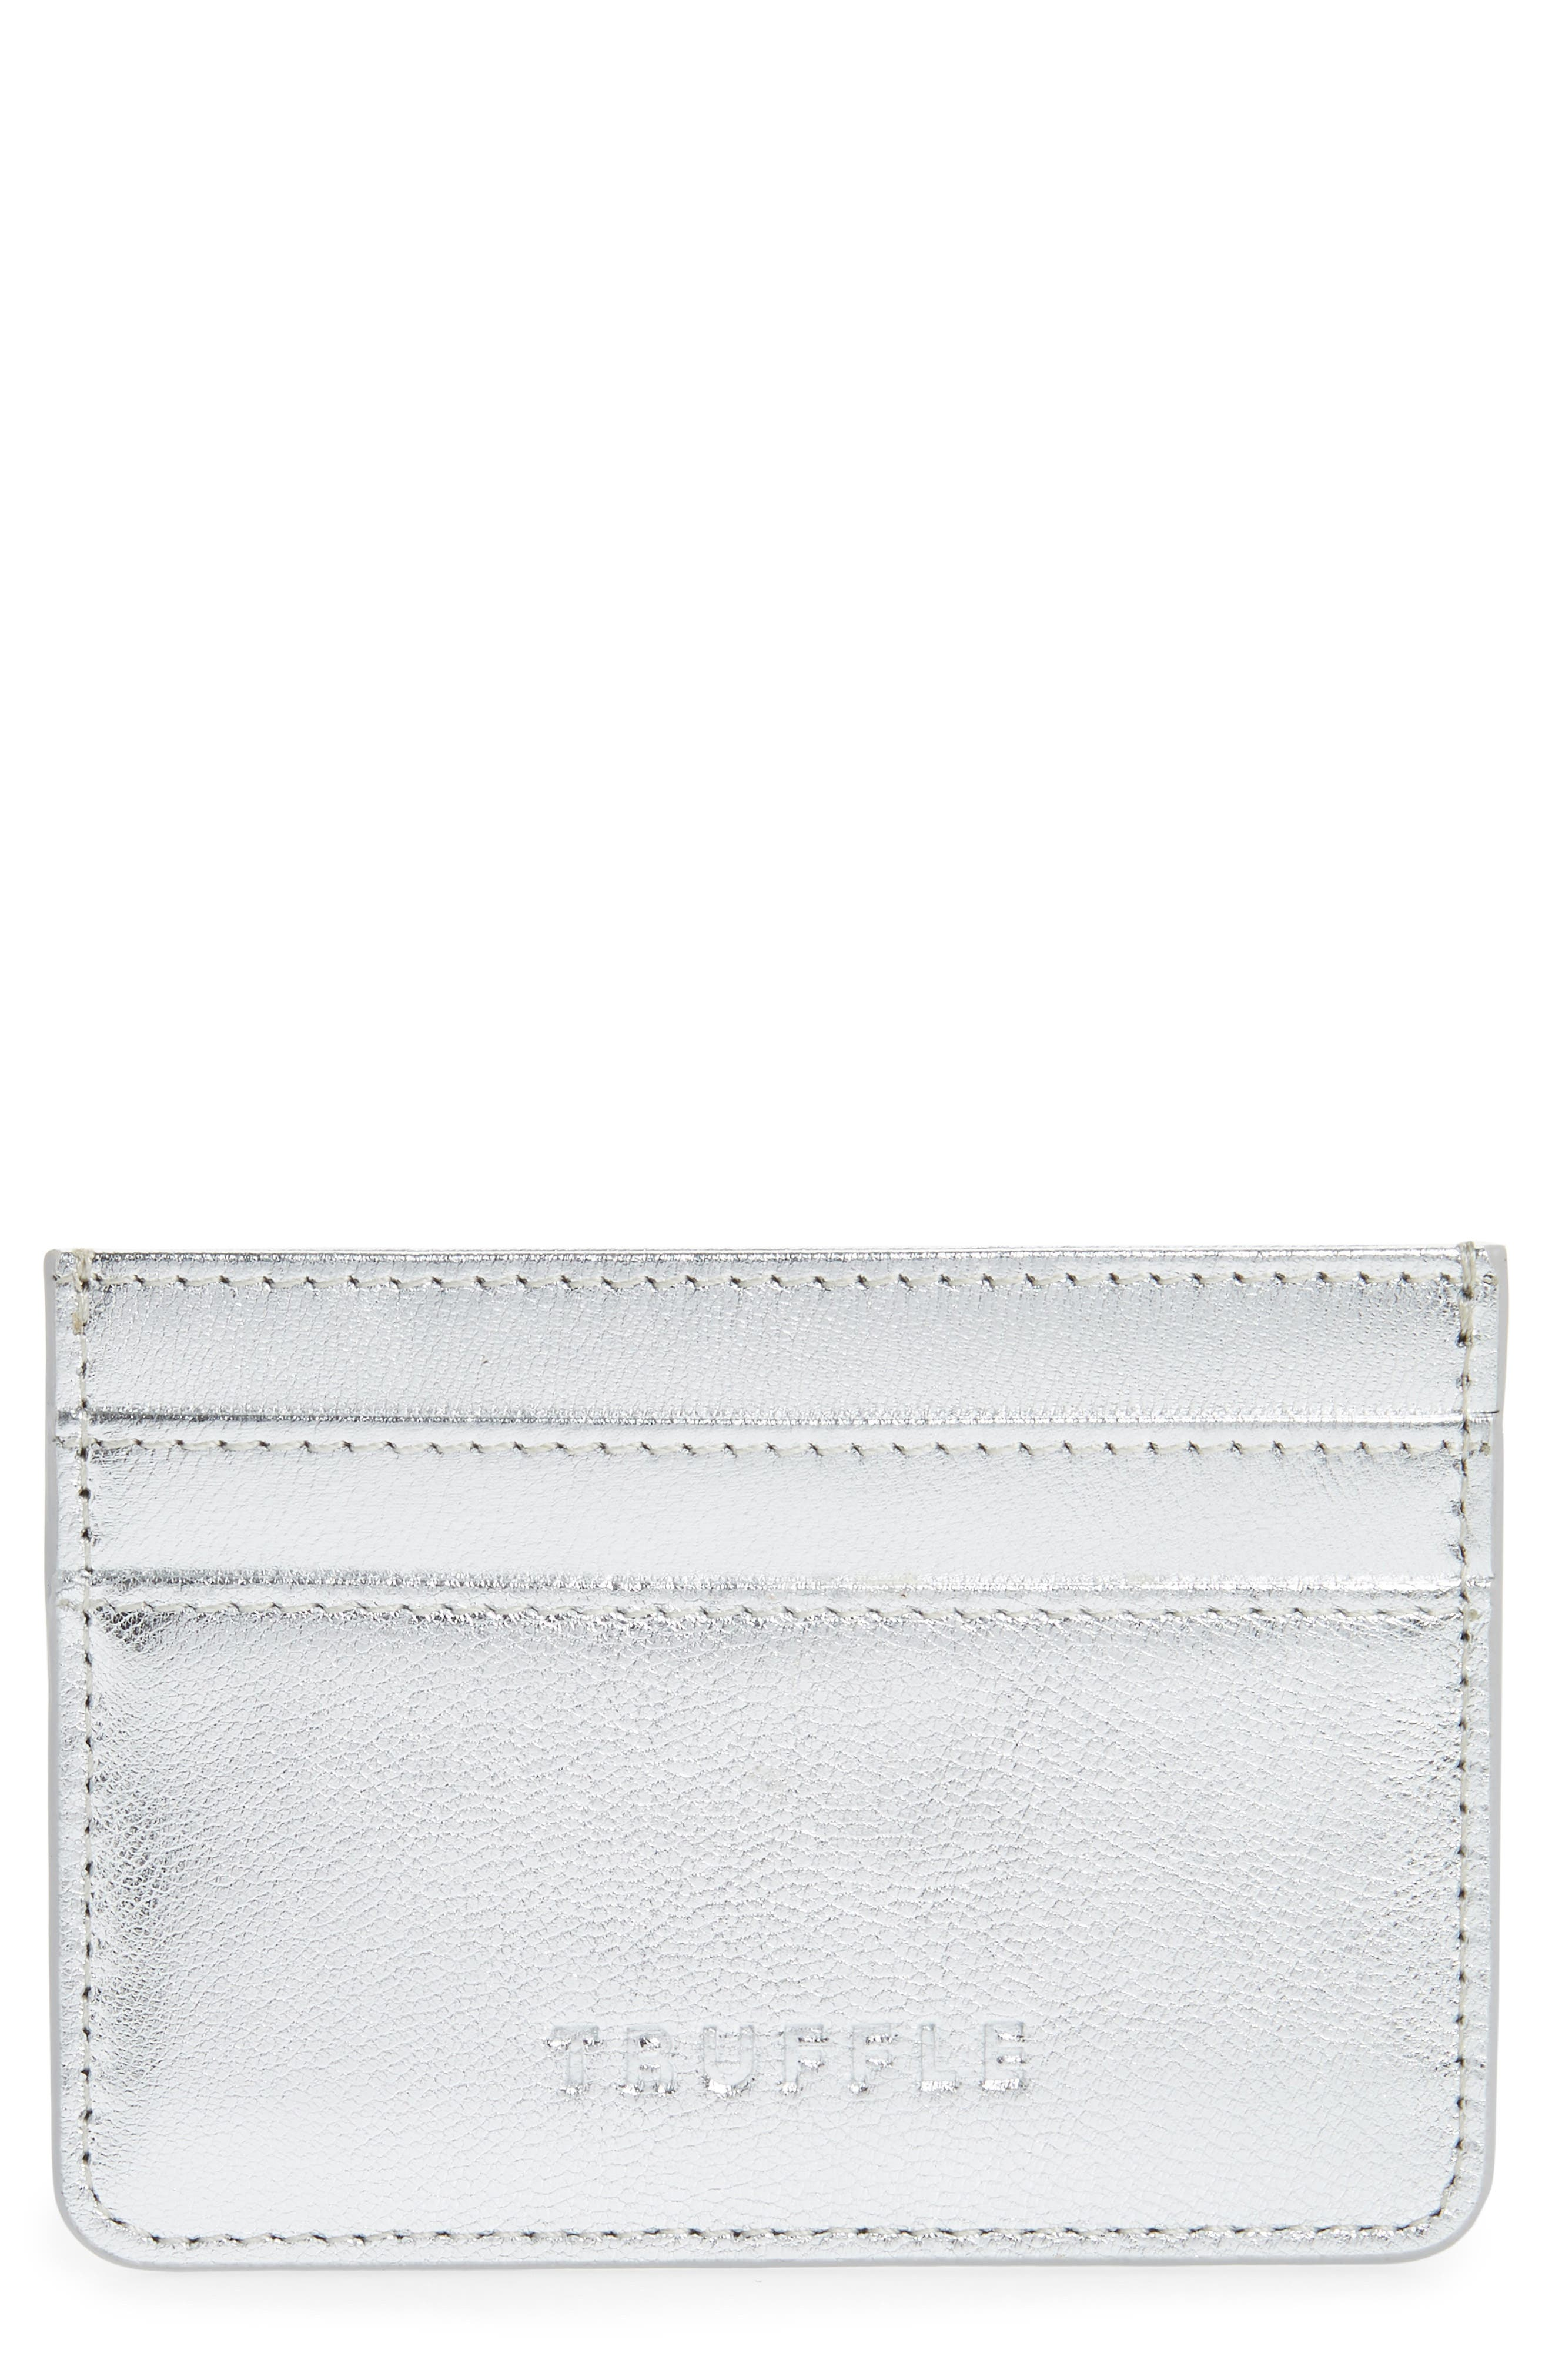 Privacy Leather Card Case,                         Main,                         color, SILVER